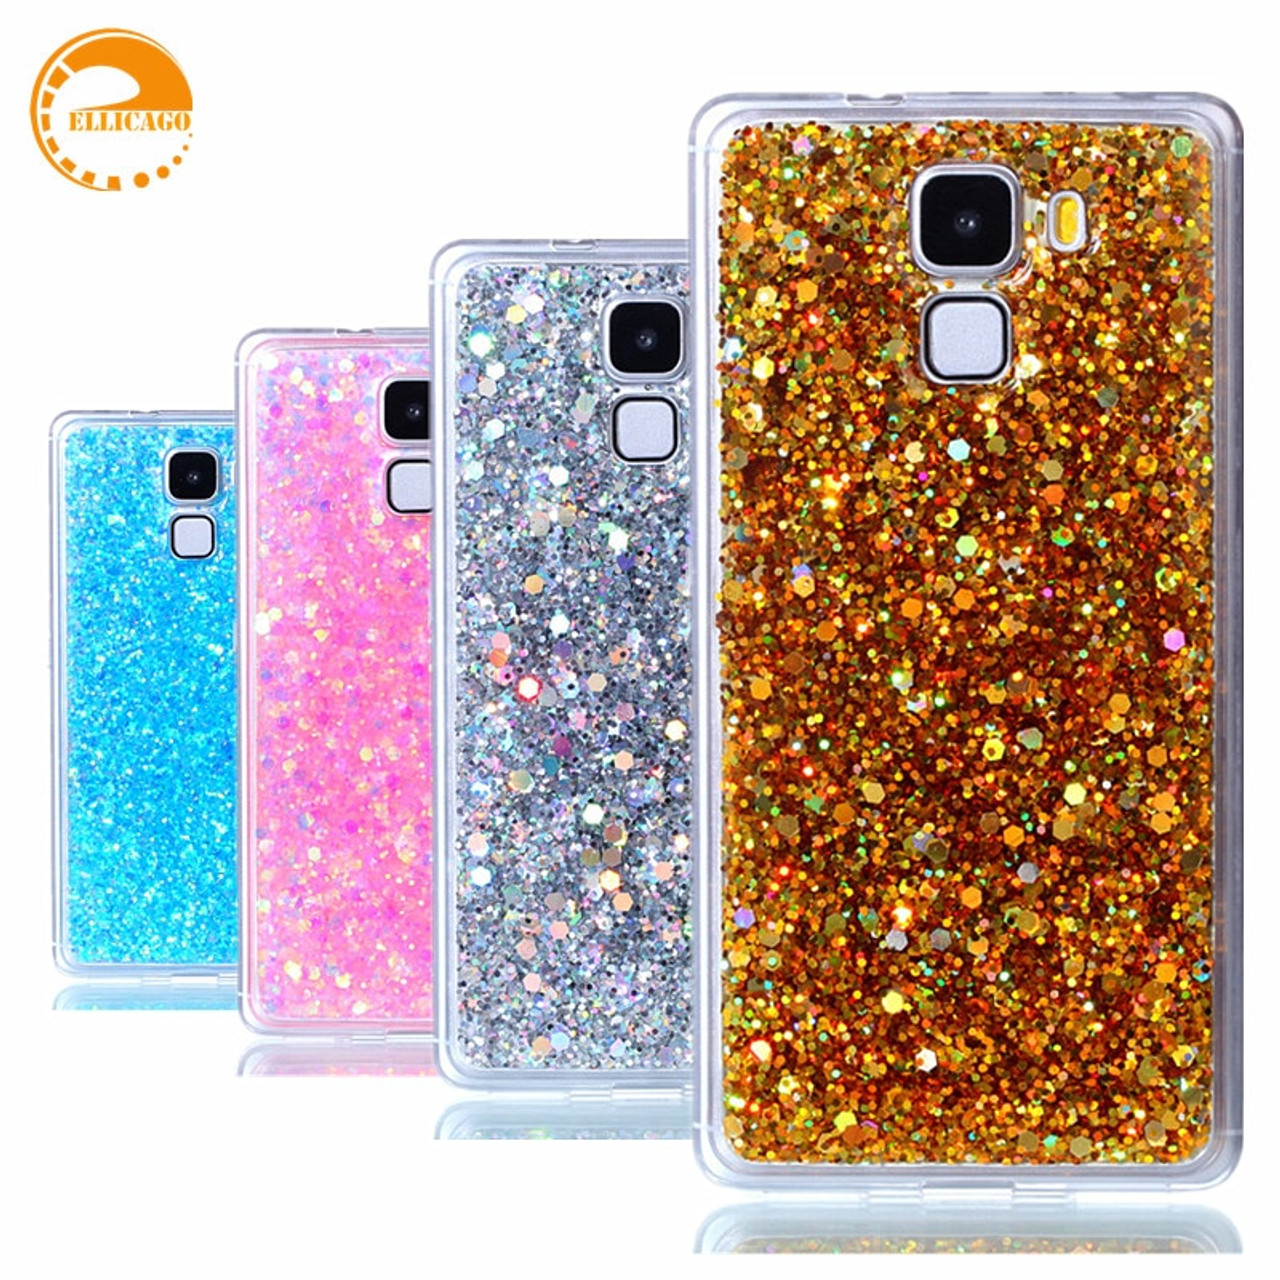 competitive price e936d 9ccf1 Huawei Honor 7 Case Cover Bling Glitter Diamond Case for Huawei Honor 7  coque Soft Silicon Phone Case